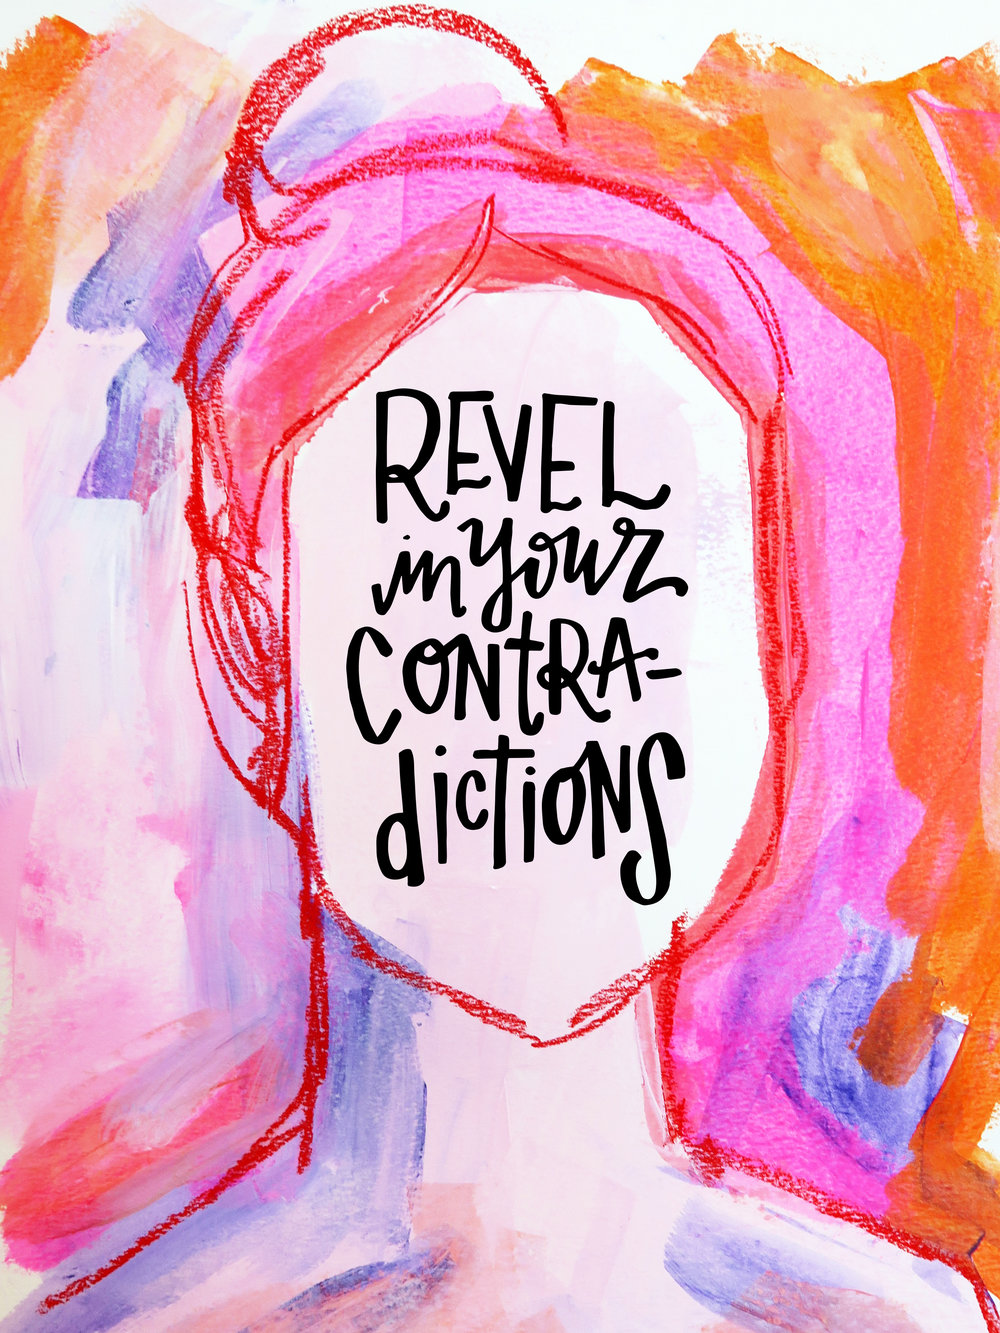 3/18/16: Contradictions